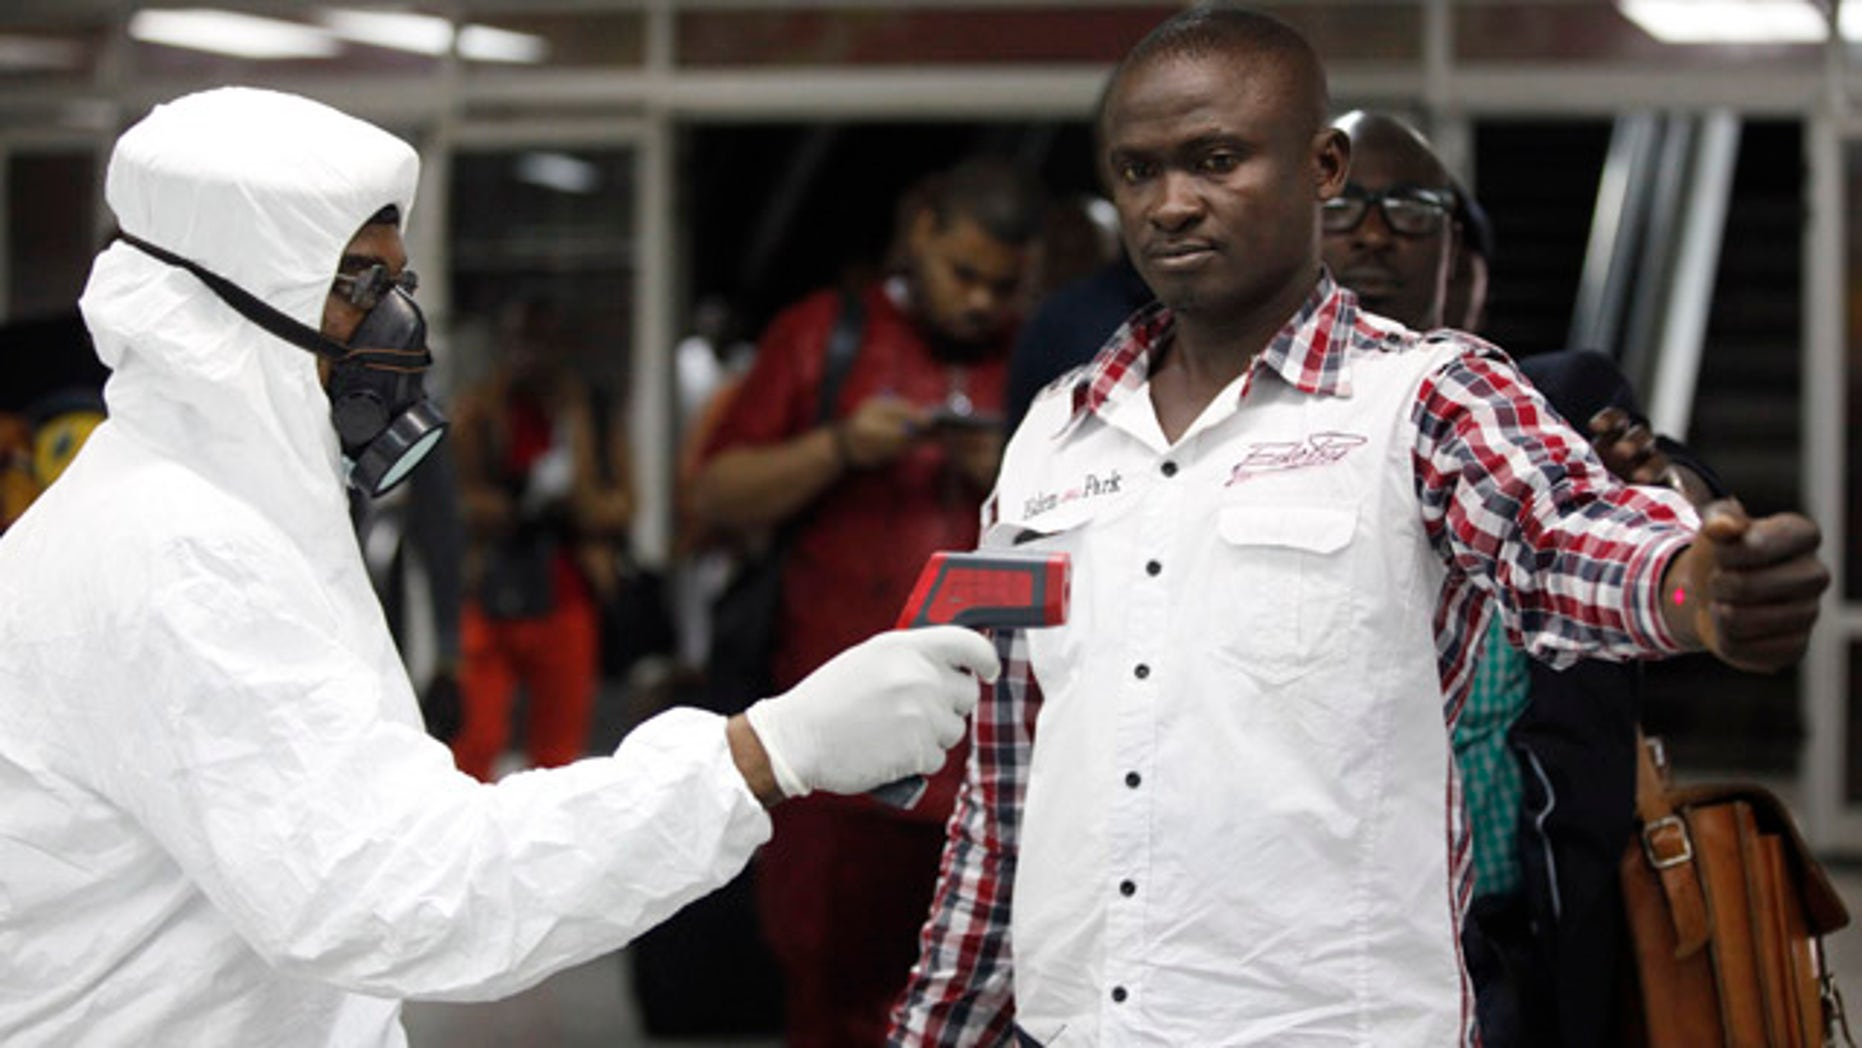 FILE - In this Aug. 6, 2014 file photo, a Nigerian port health official uses a thermometer on a worker at the arrivals hall of Murtala Muhammed International Airport in Lagos. As the Ebola outbreak in West Africa grows, airlines around the globe are closely monitoring the situation but have yet to make any drastic changes. (AP Photo/Sunday Alamba, File)